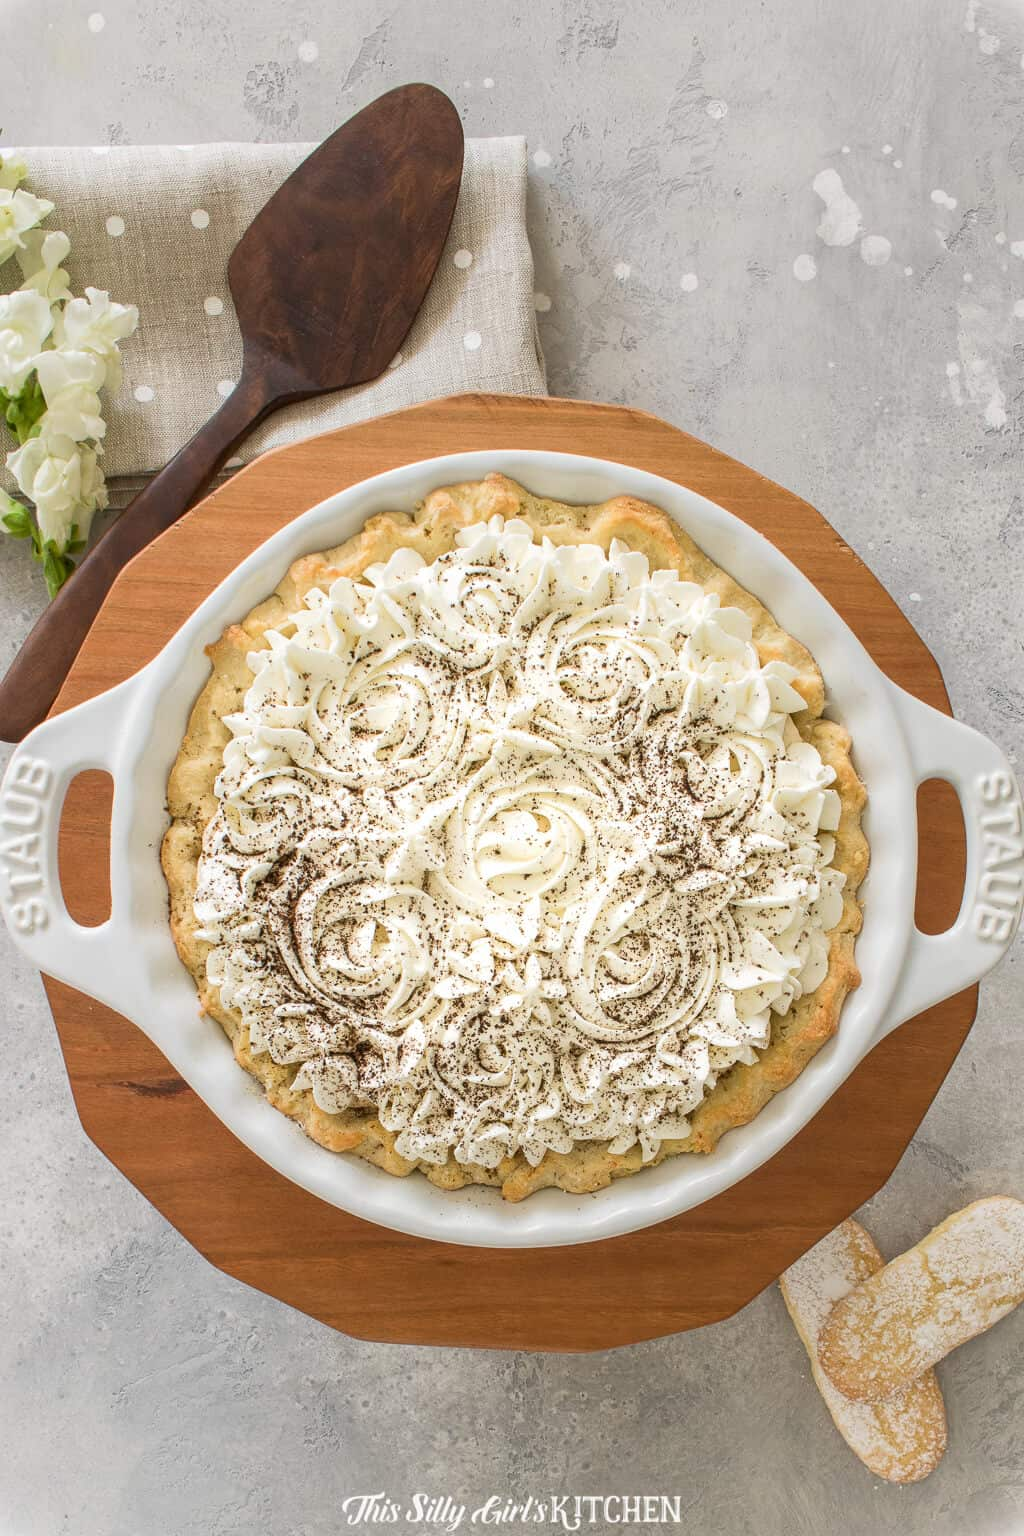 Tiramisu Pie, Layers of sweet mascarpone cream with ladyfinger cookies and fresh whipped cream all in an irresistiblepie crust. #Recipe from ThisSillyGirlsKitchen.com #tiramisu #pie #tiramisupie #tiramisurecipe #homemade